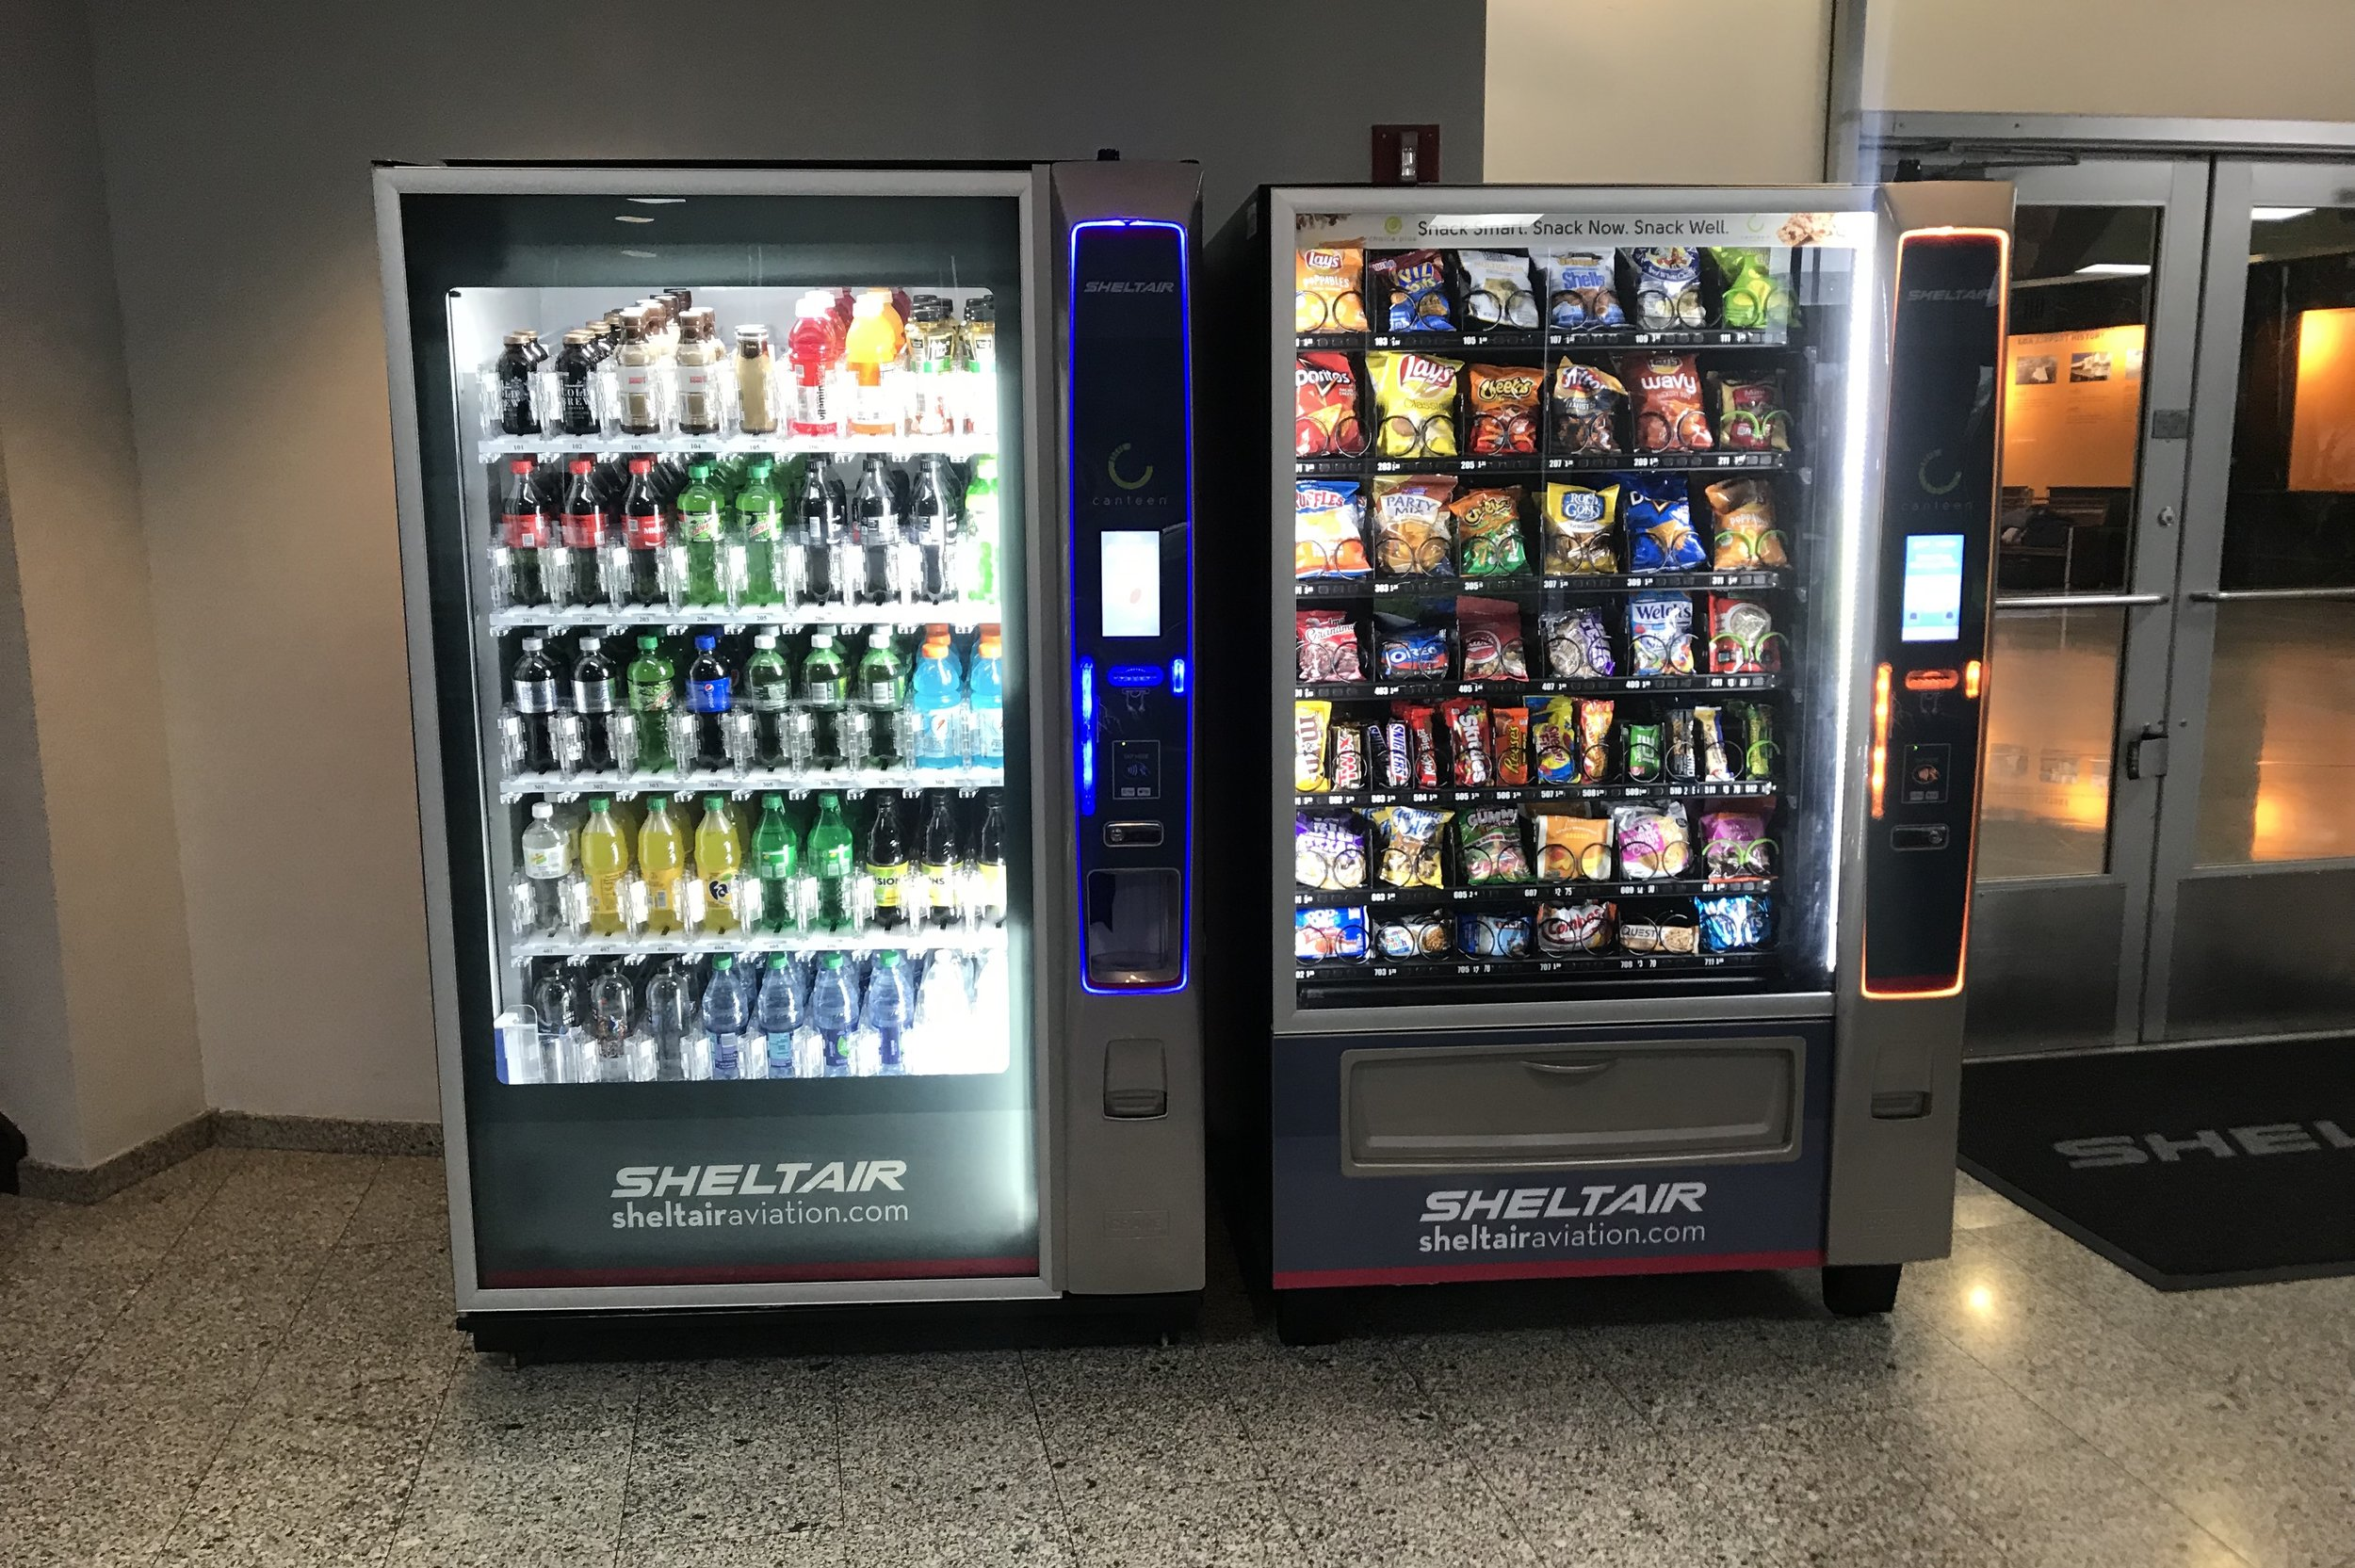 BLADE Helicopters – SheltAir Lounge vending machines